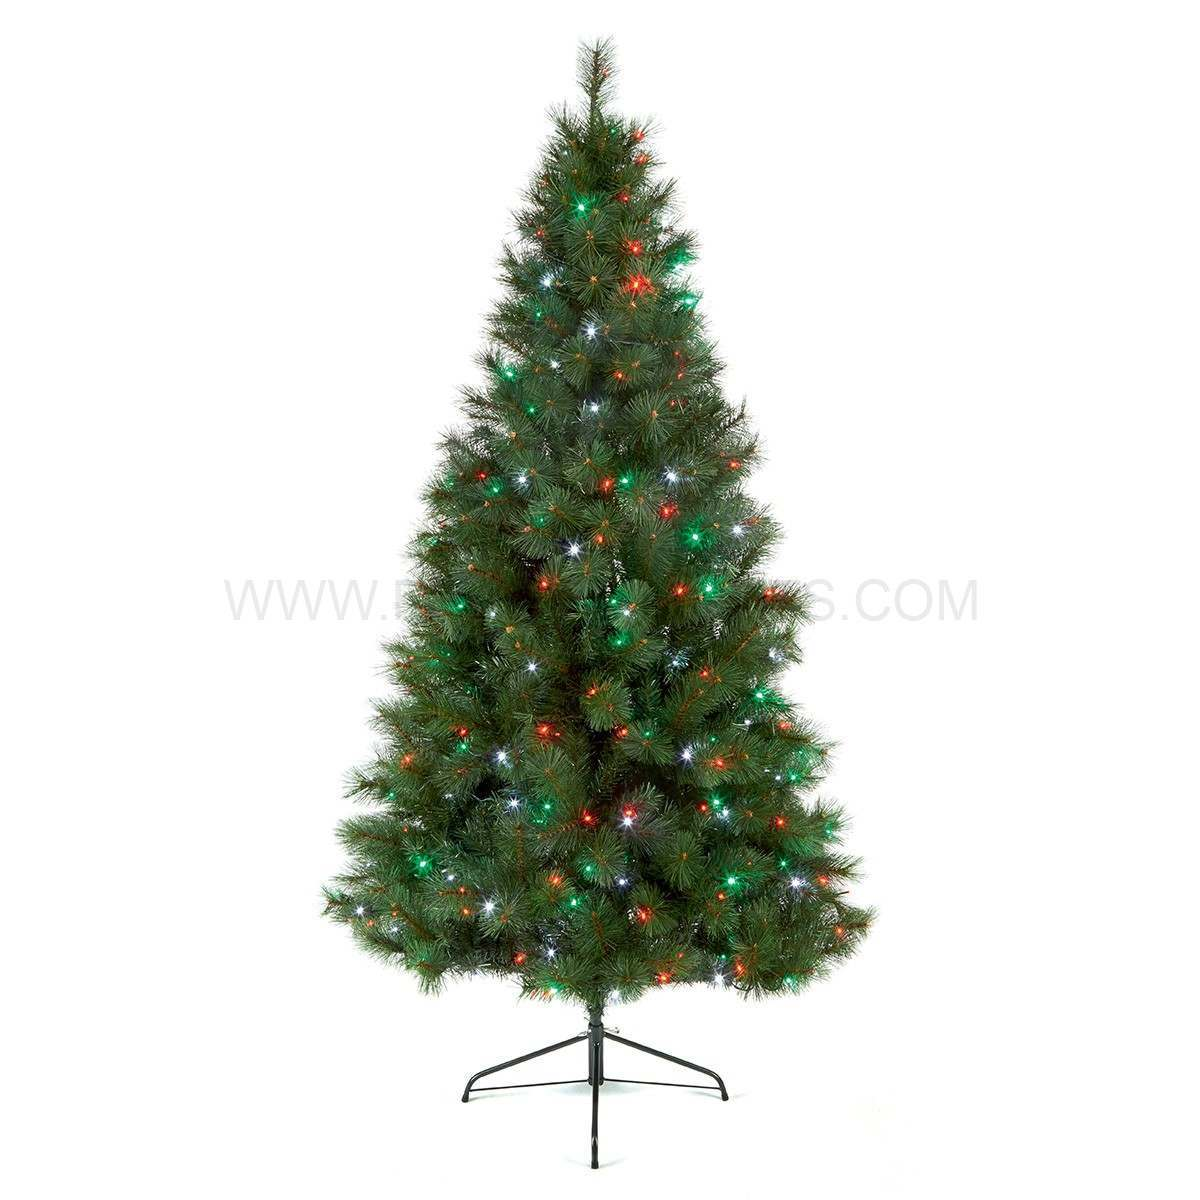 Outdoor Christmas Tree Shop For Cheap House Decorations: outdoor christmas tree photos